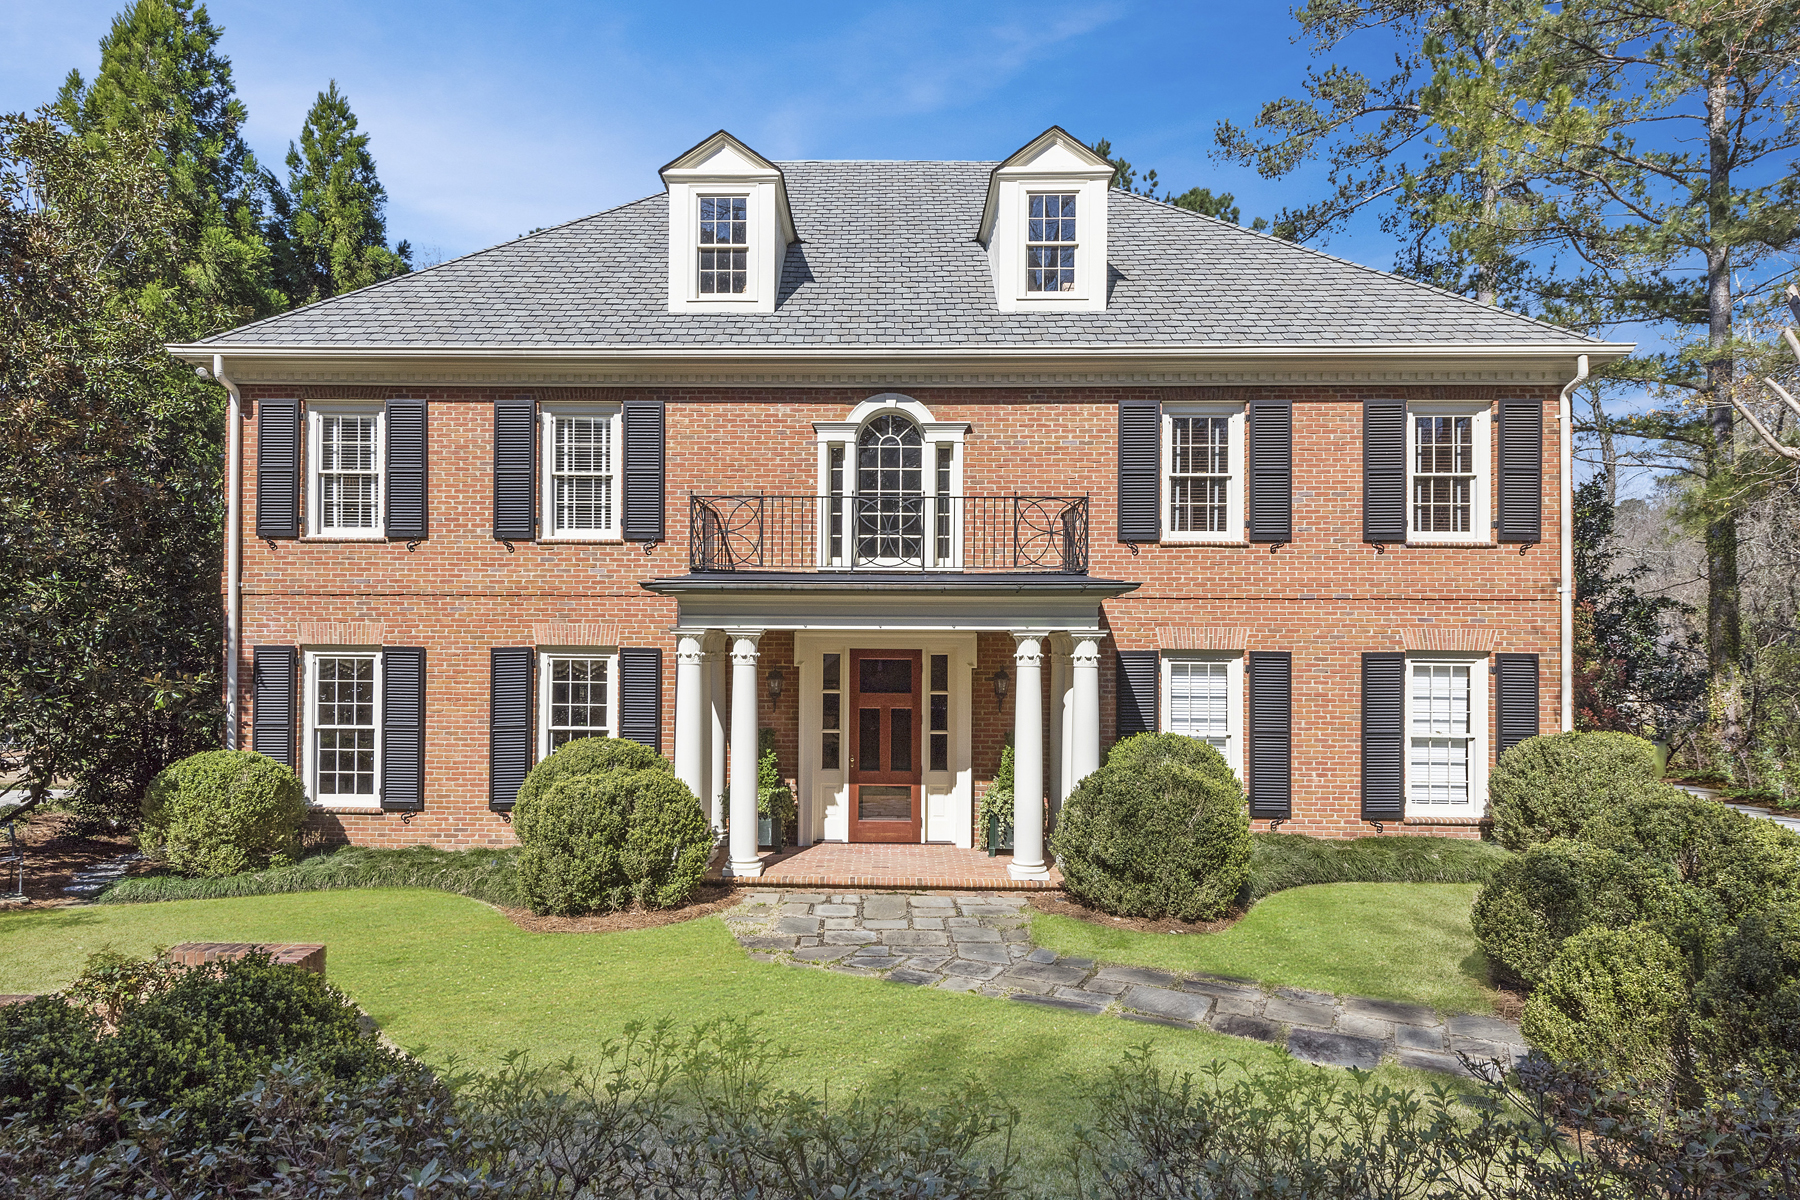 Single Family Home for Sale at Classic Brick Traditional On A Private Cul-de-sac In The Heart Of Buckhead 16 Habersham Park NW Atlanta, Georgia 30305 United States